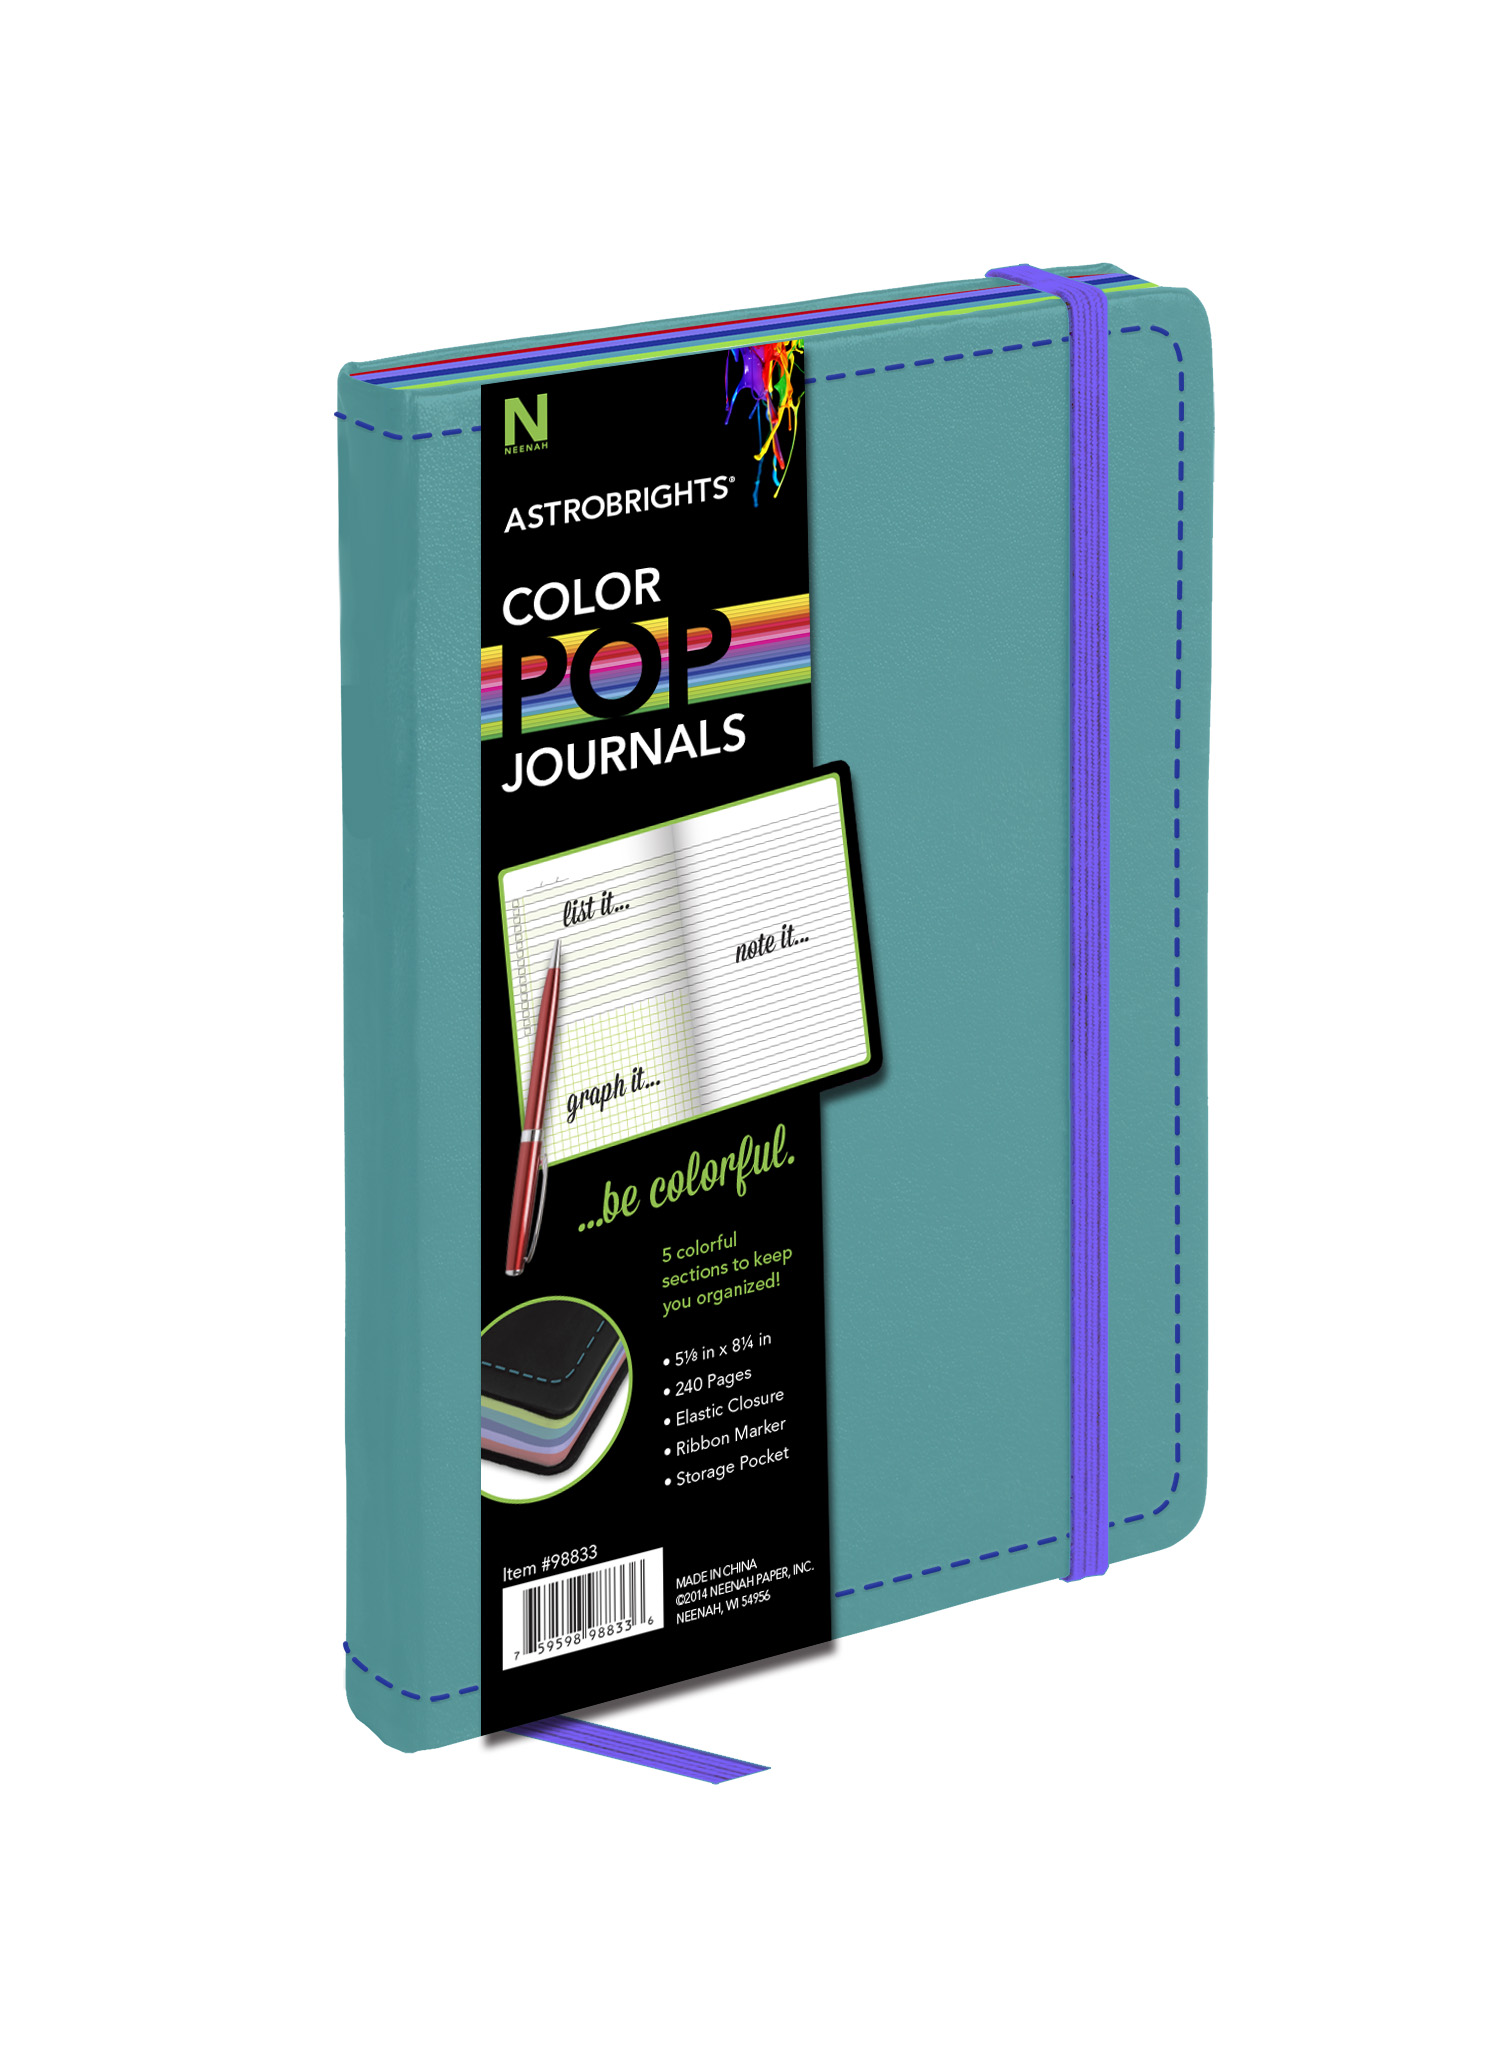 Newmediawire astrobrights rolls out a colorful line of for Colors that pop out